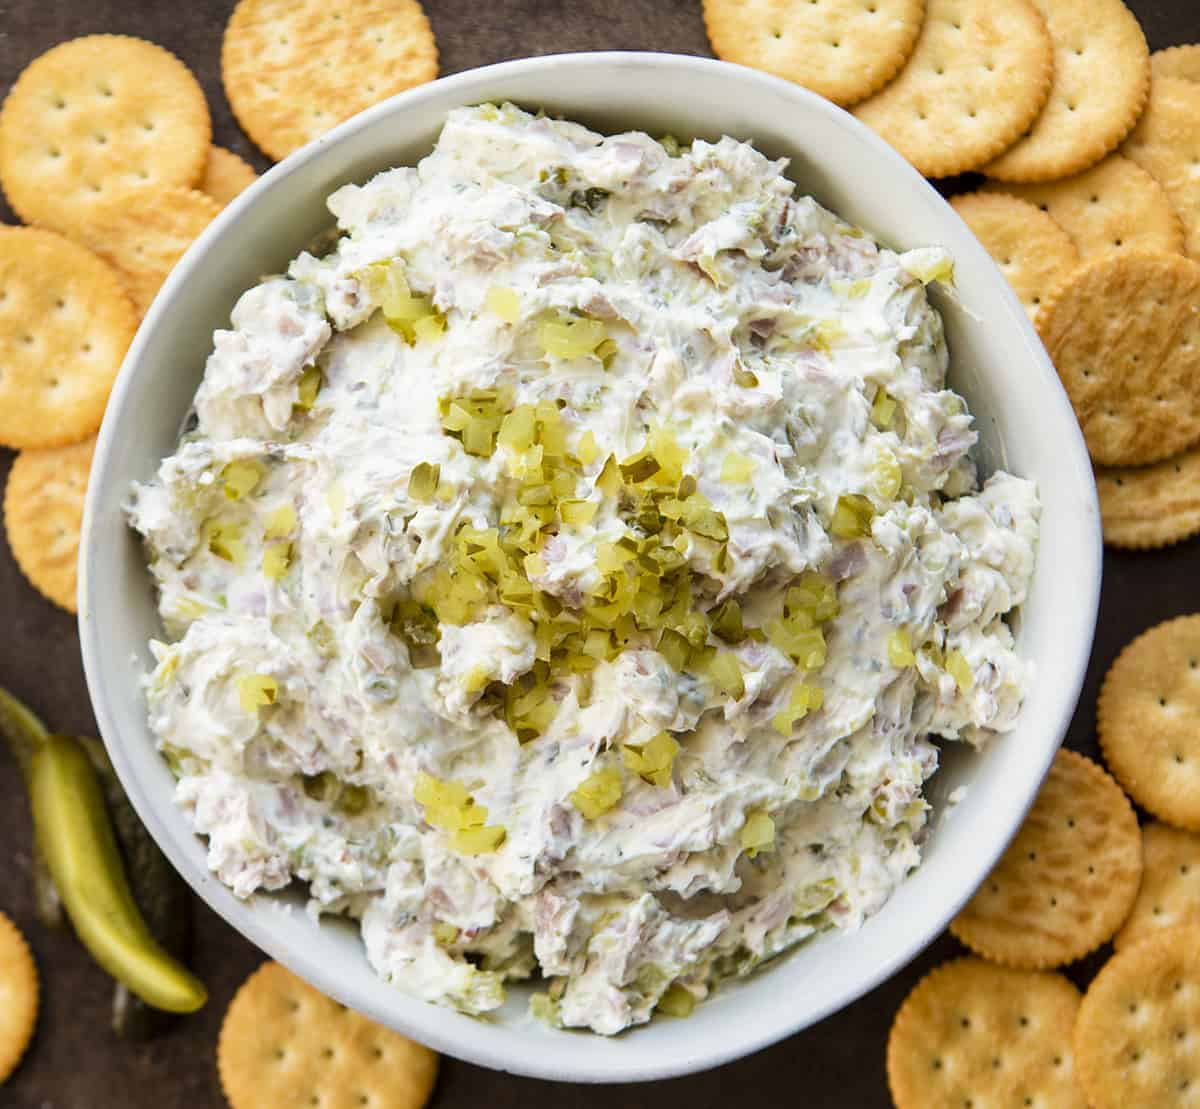 Overhead Image of Dill Pickle Dip in White Bowl with Crackers Around Base